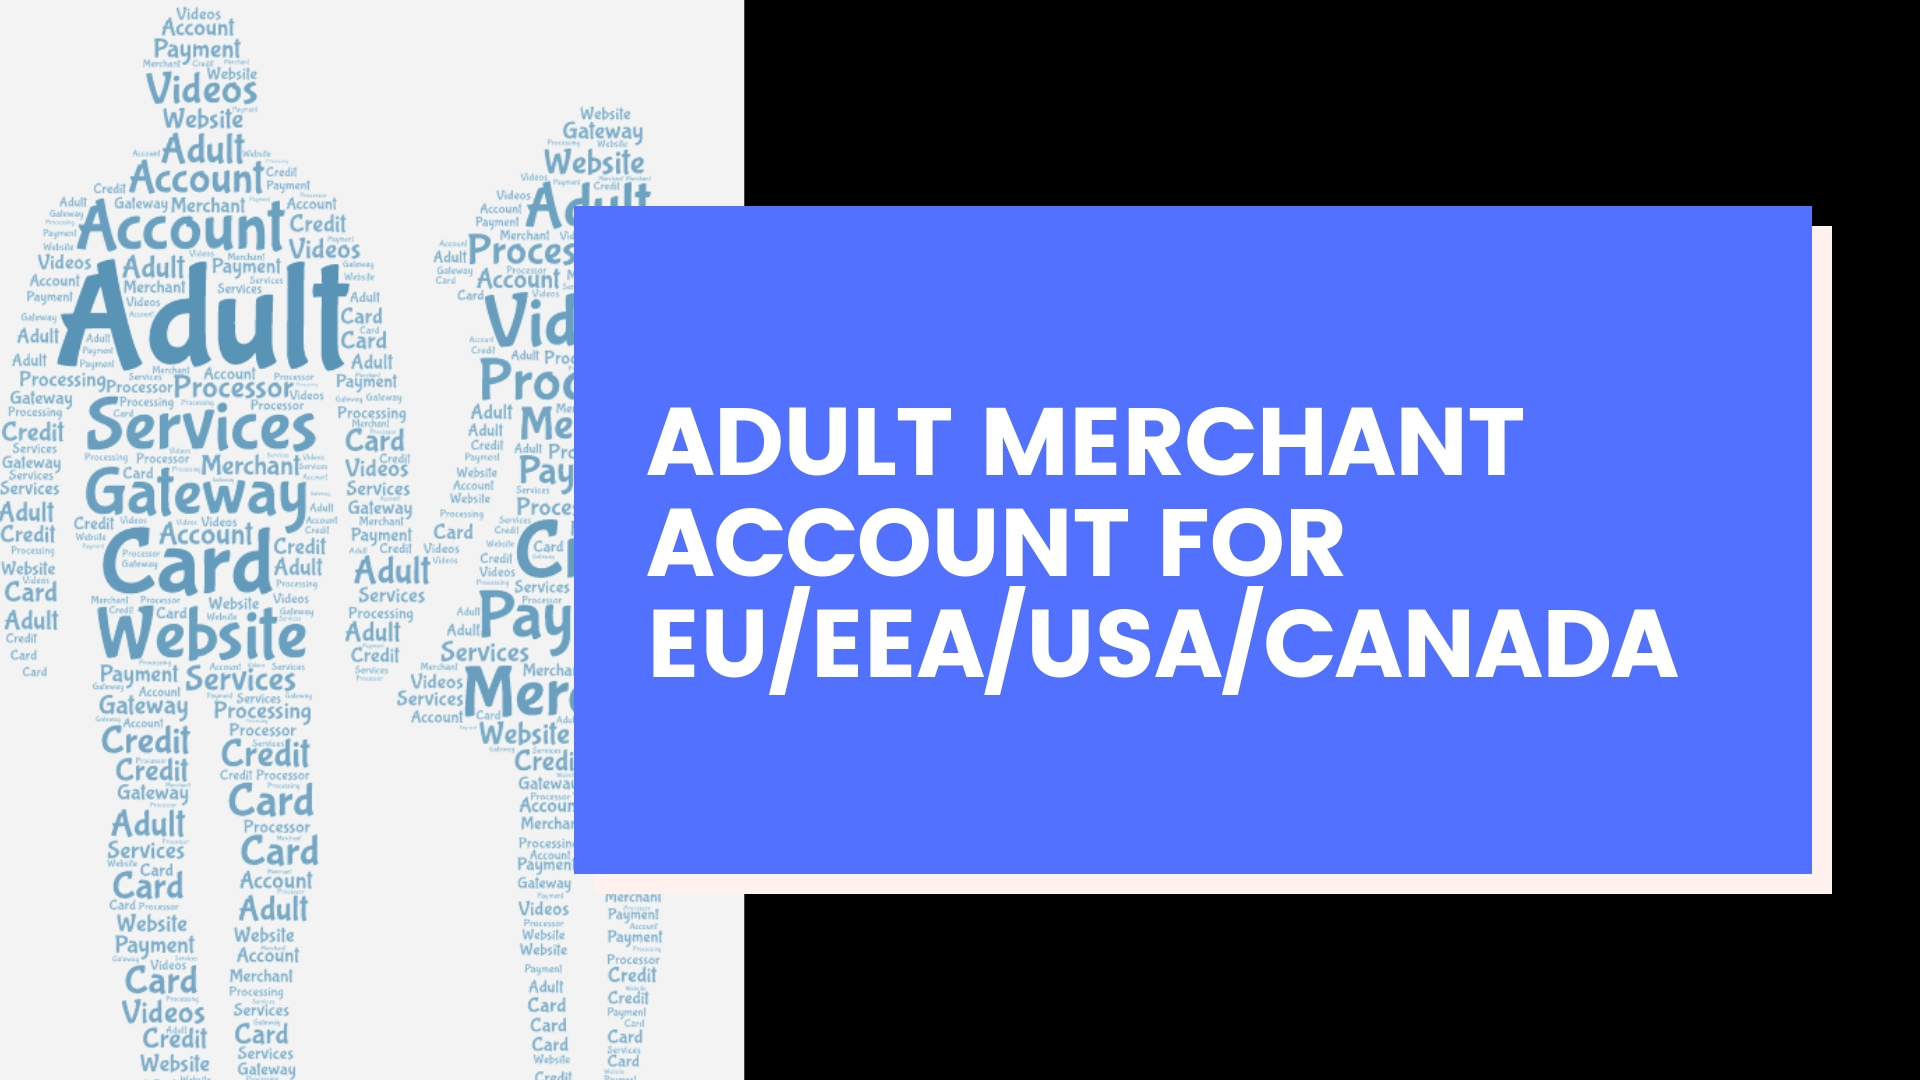 ADULT MERCHANT ACCOUNT